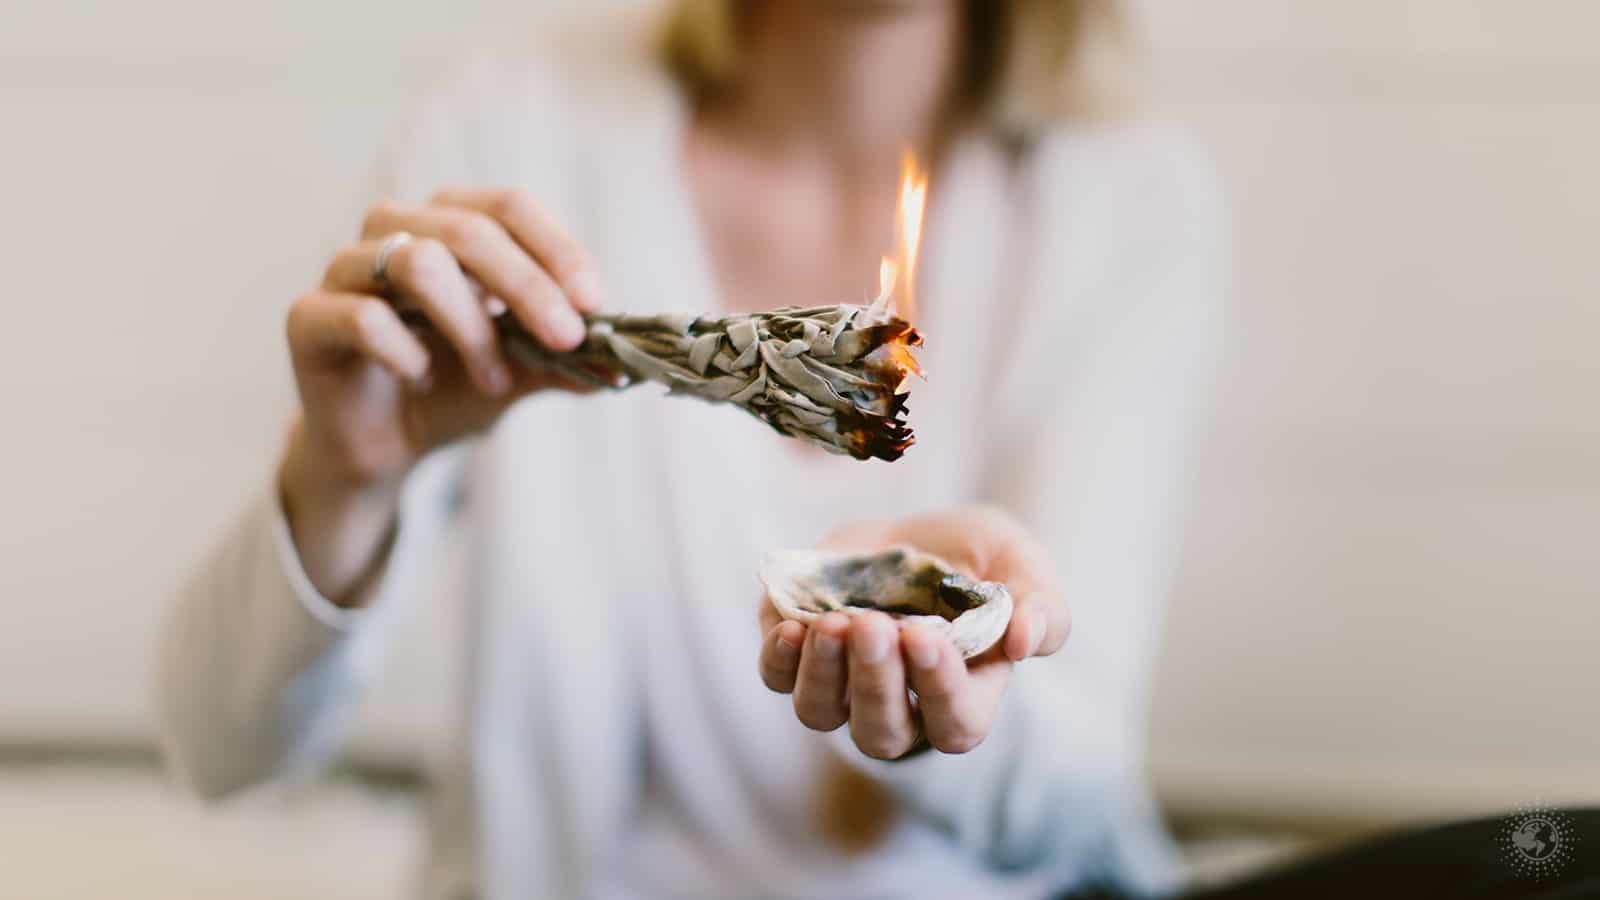 10 Healthy Benefits of Burning Sage in Your Home »